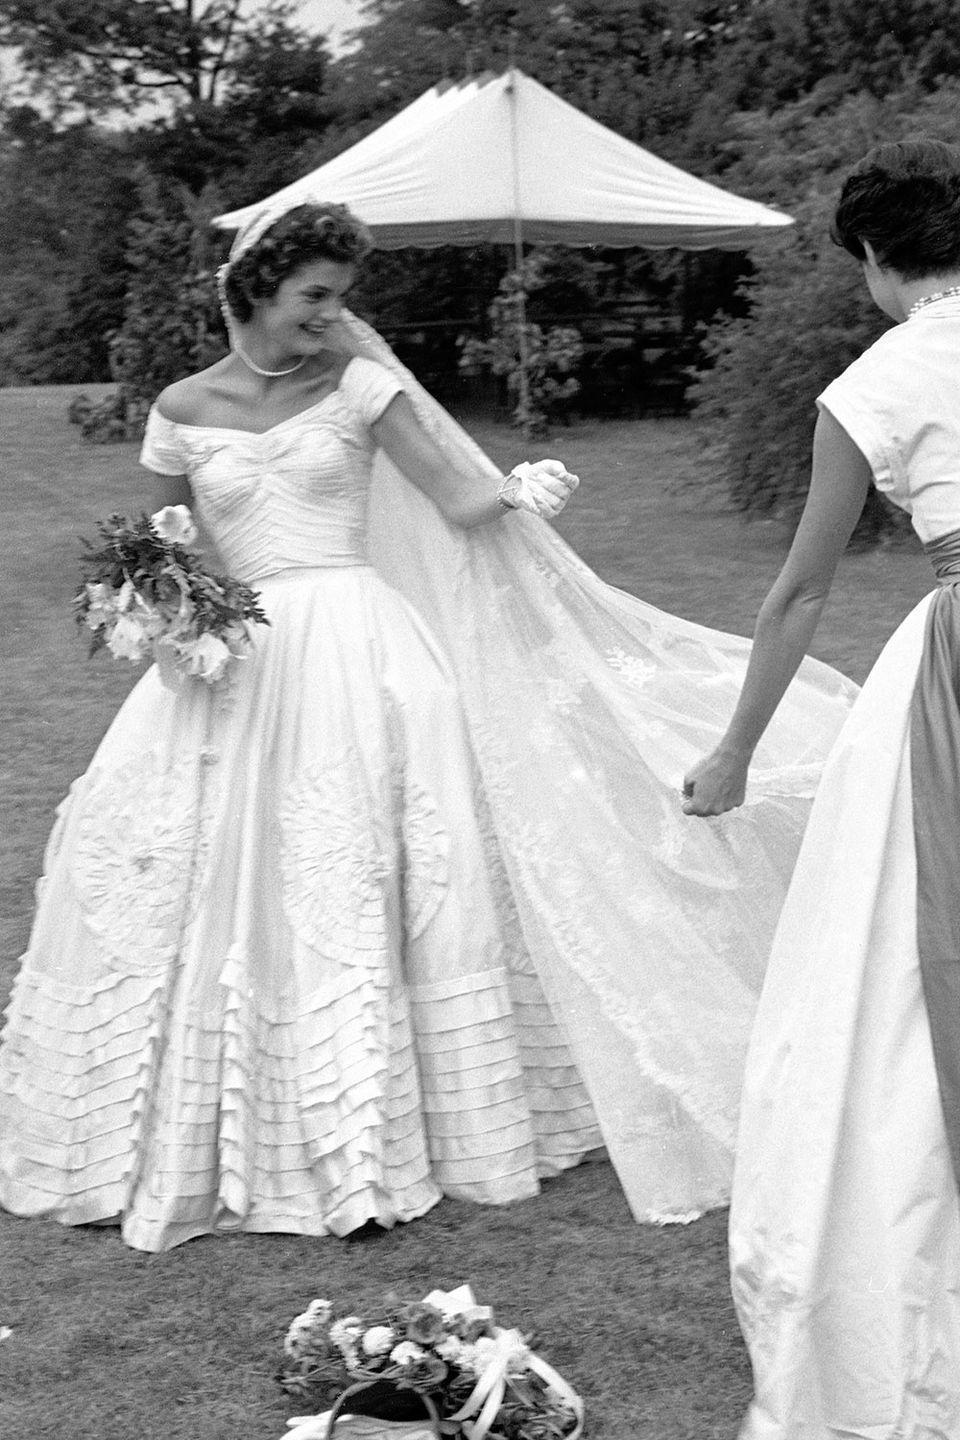 <p>The bride got some wardrobe assistance from a member of the bridal party.</p>